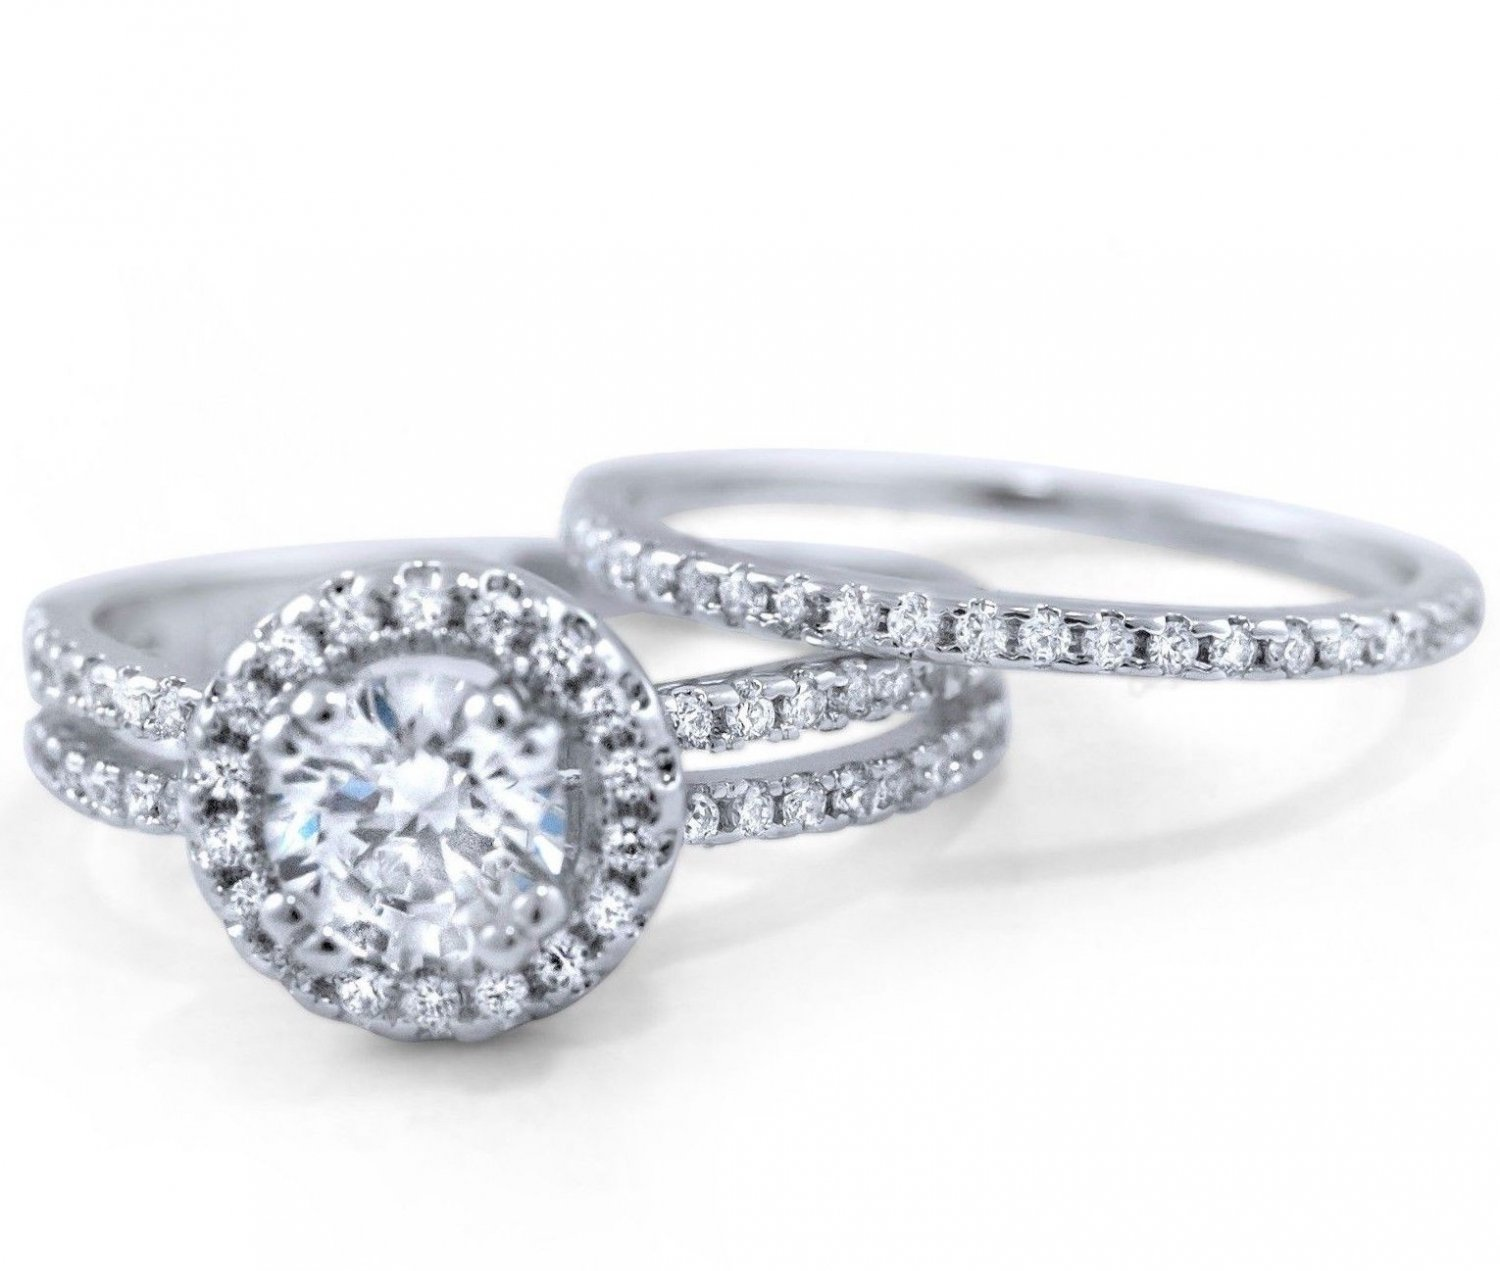 6mm Sterling Silver ROUND CUT CLEAR CZ DOUBLE 2 PIECE WEDDING BAND BRIDAL SET